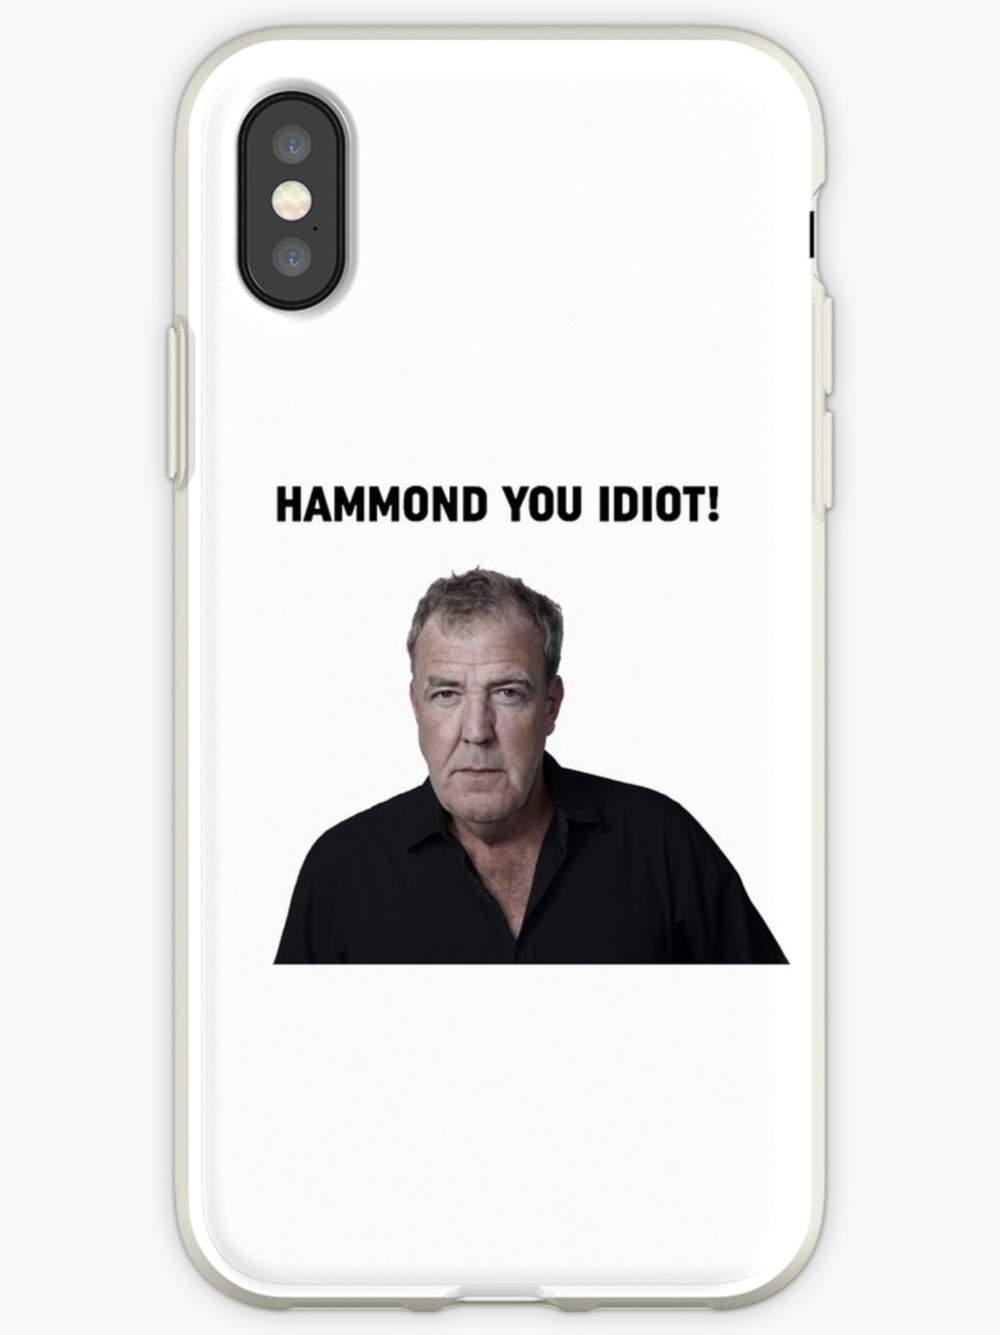 THE JEREMY CLARKSON COLLECTION - HAMMOND YOU IDIOT!